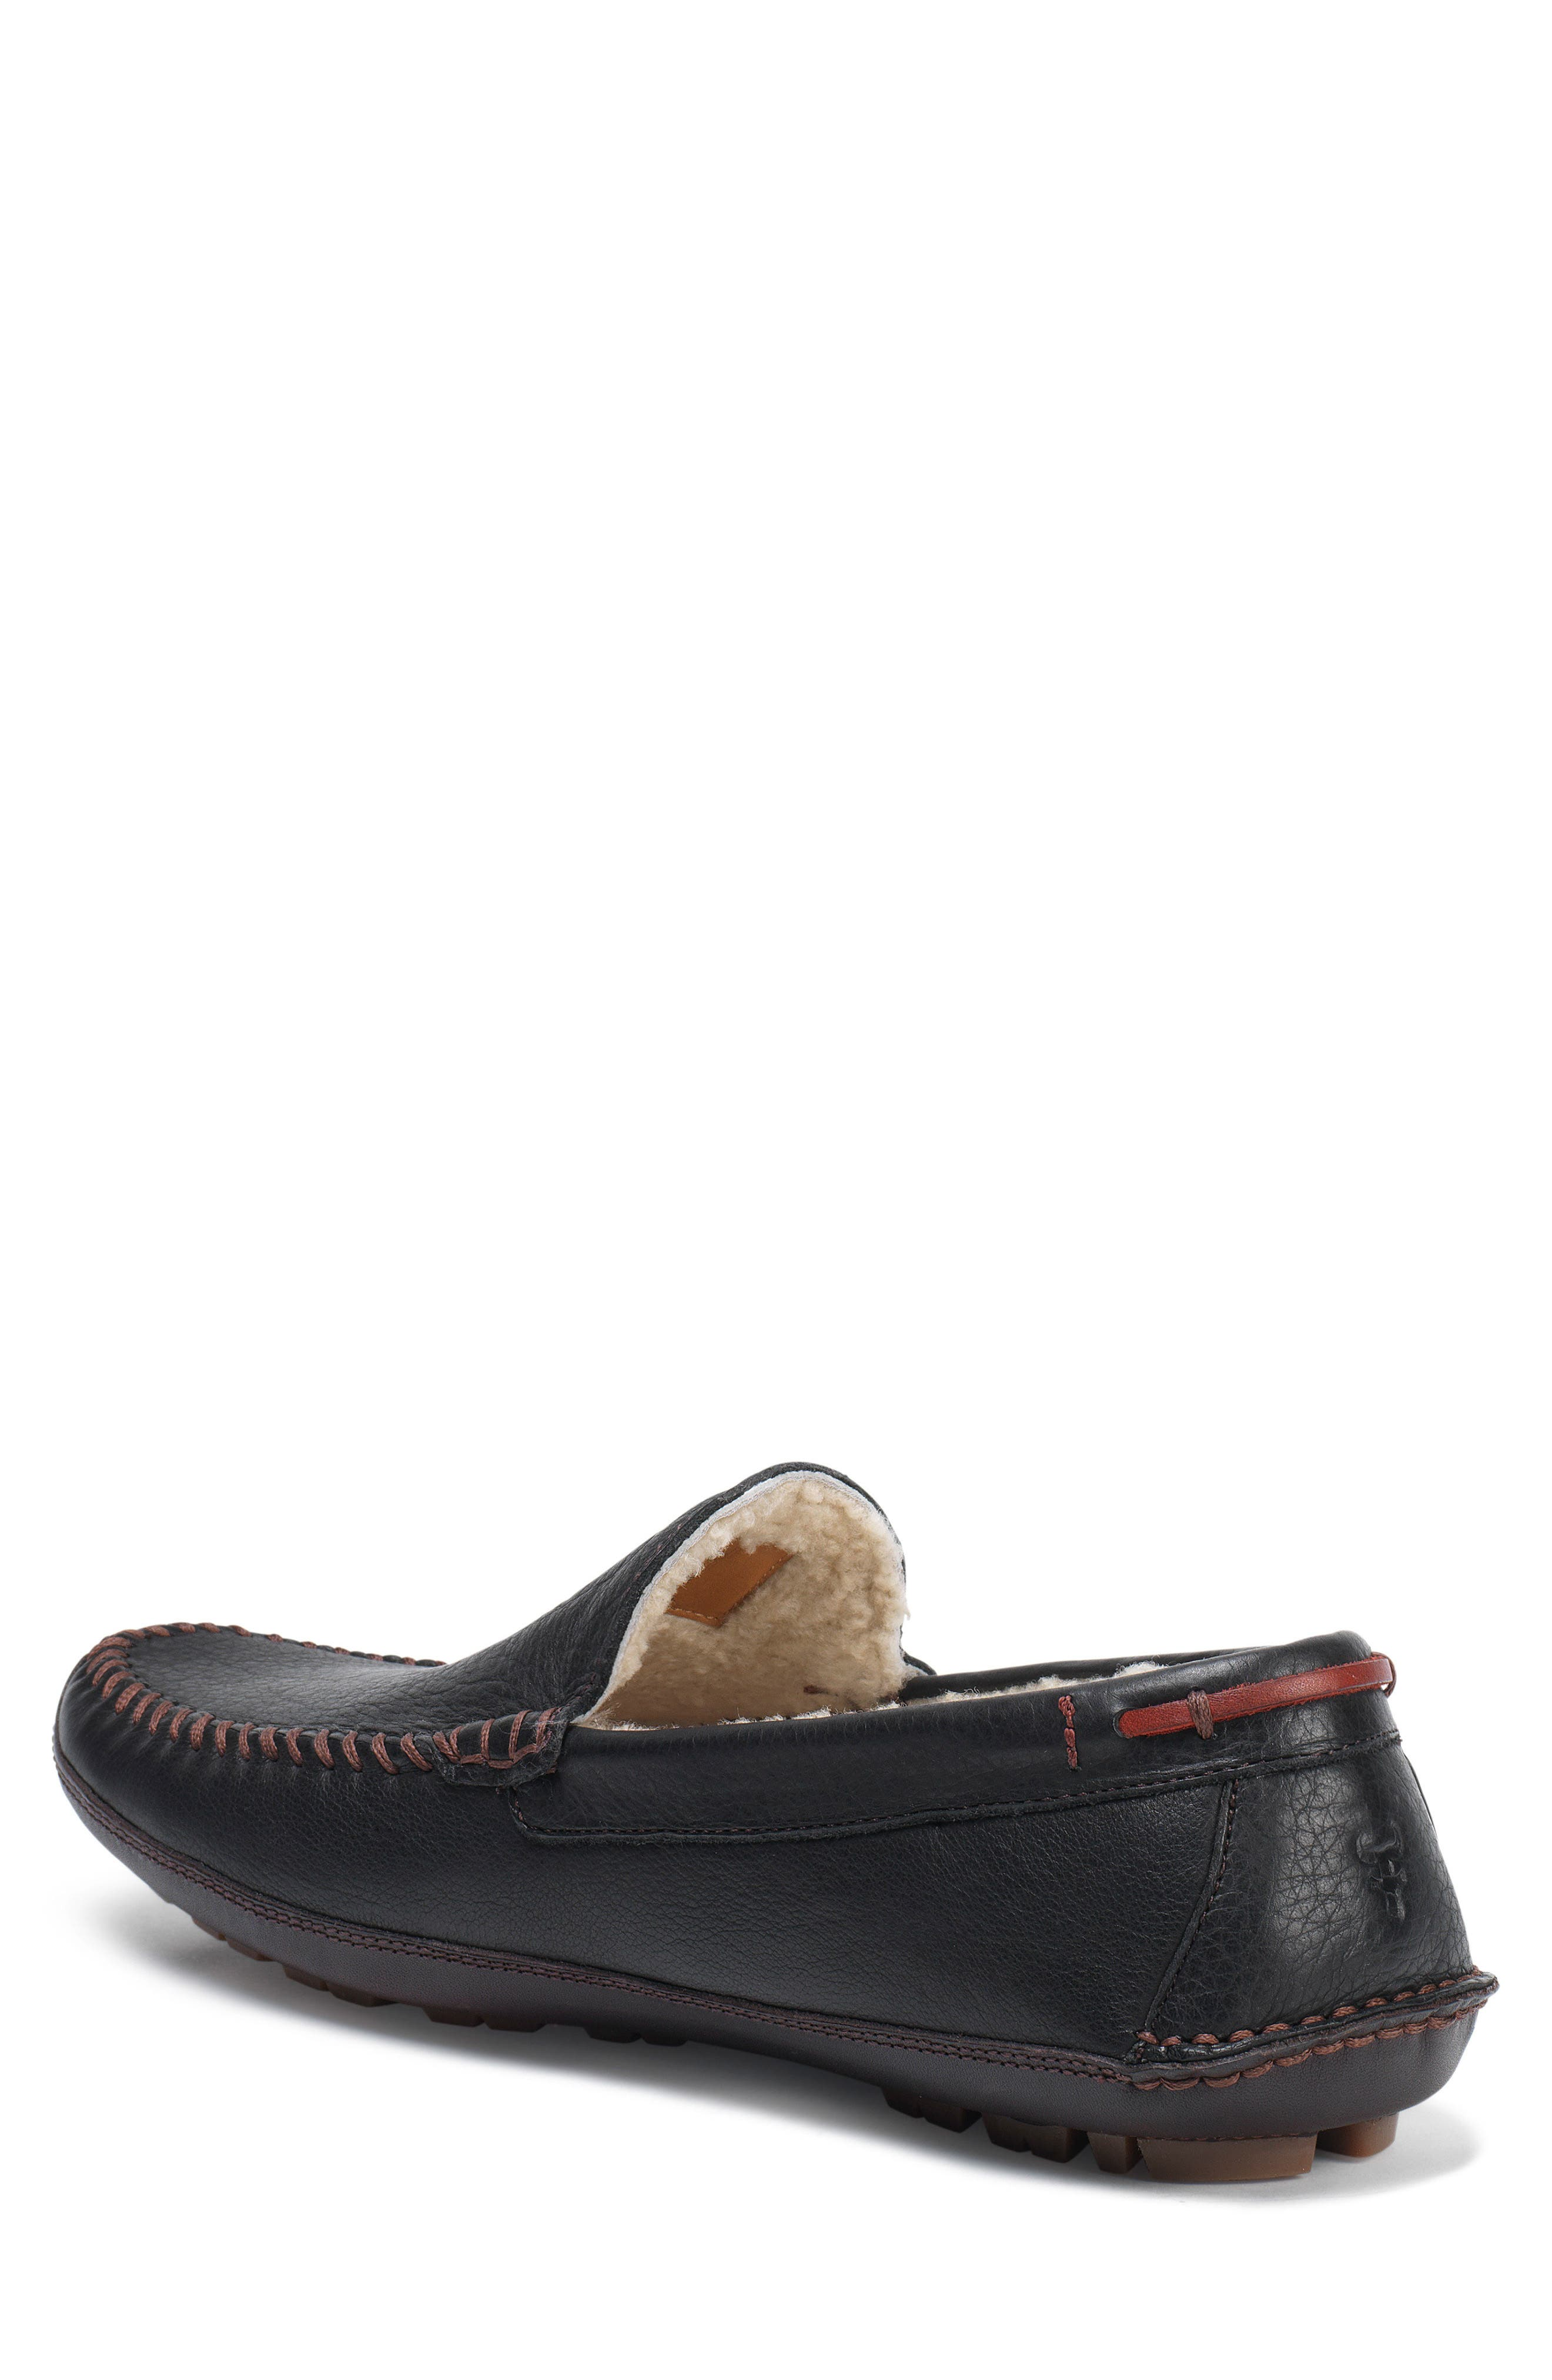 TRASK, Denton Driving Shoe with Genuine Shearling, Alternate thumbnail 2, color, BLACK LEATHER/ SHEARLING